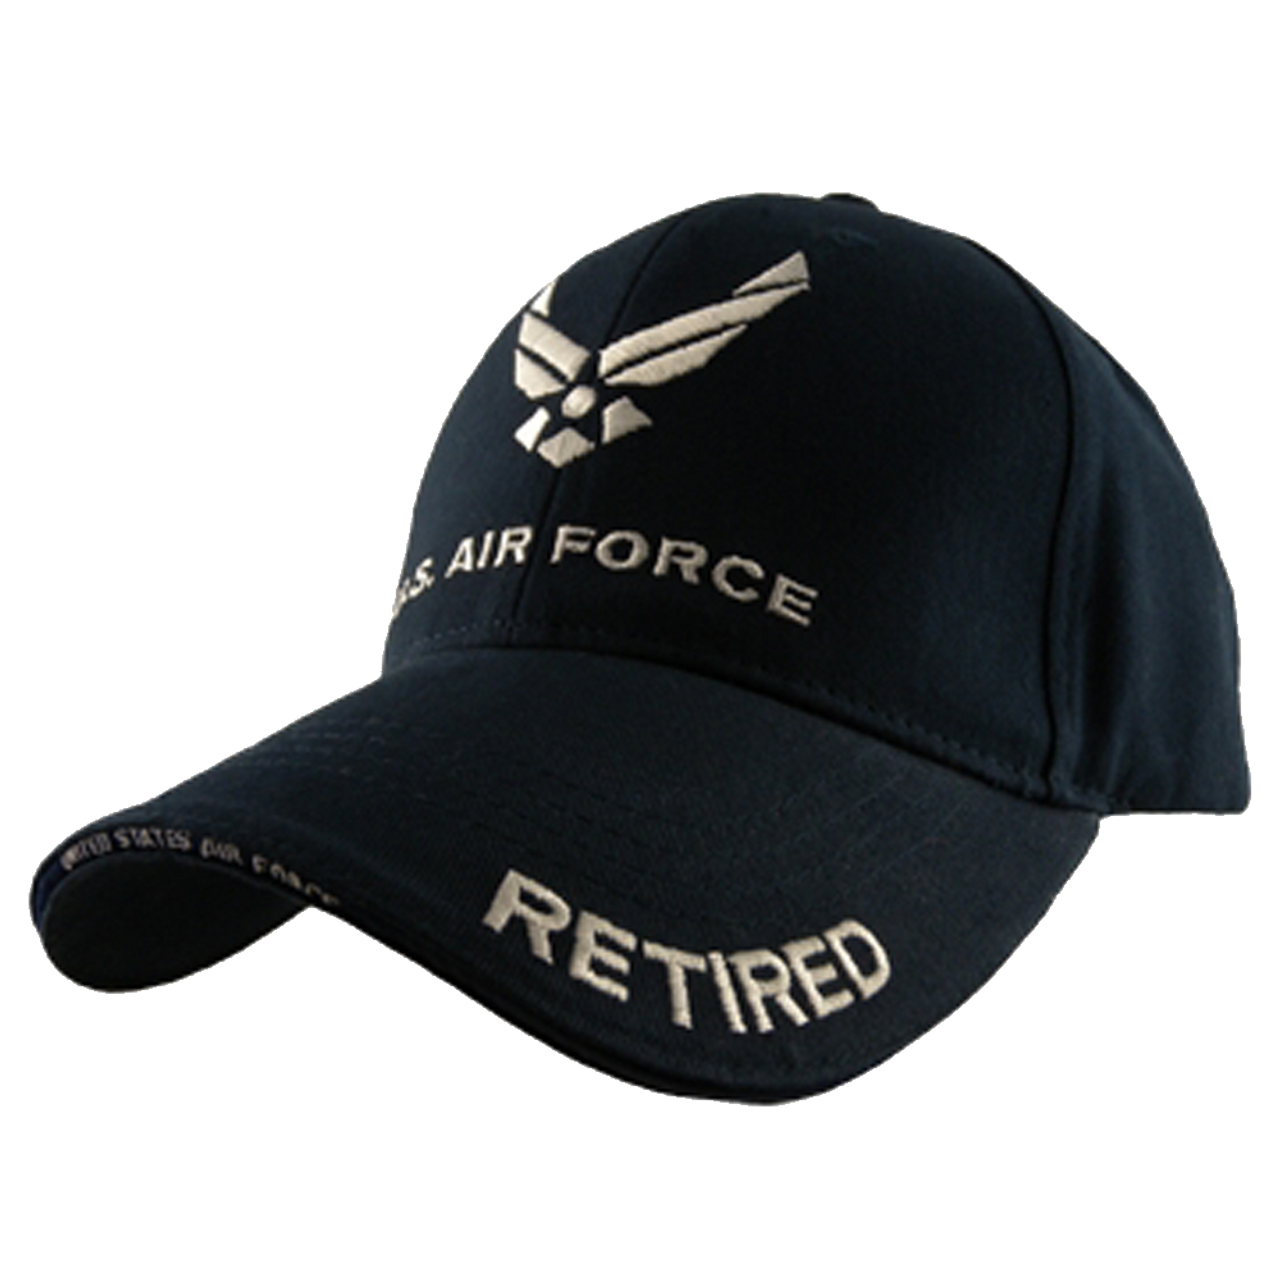 Eagle Crest 5343 - U.S. Air Force Retired Cap - Cotton - Dark Navy 0c13b603820e